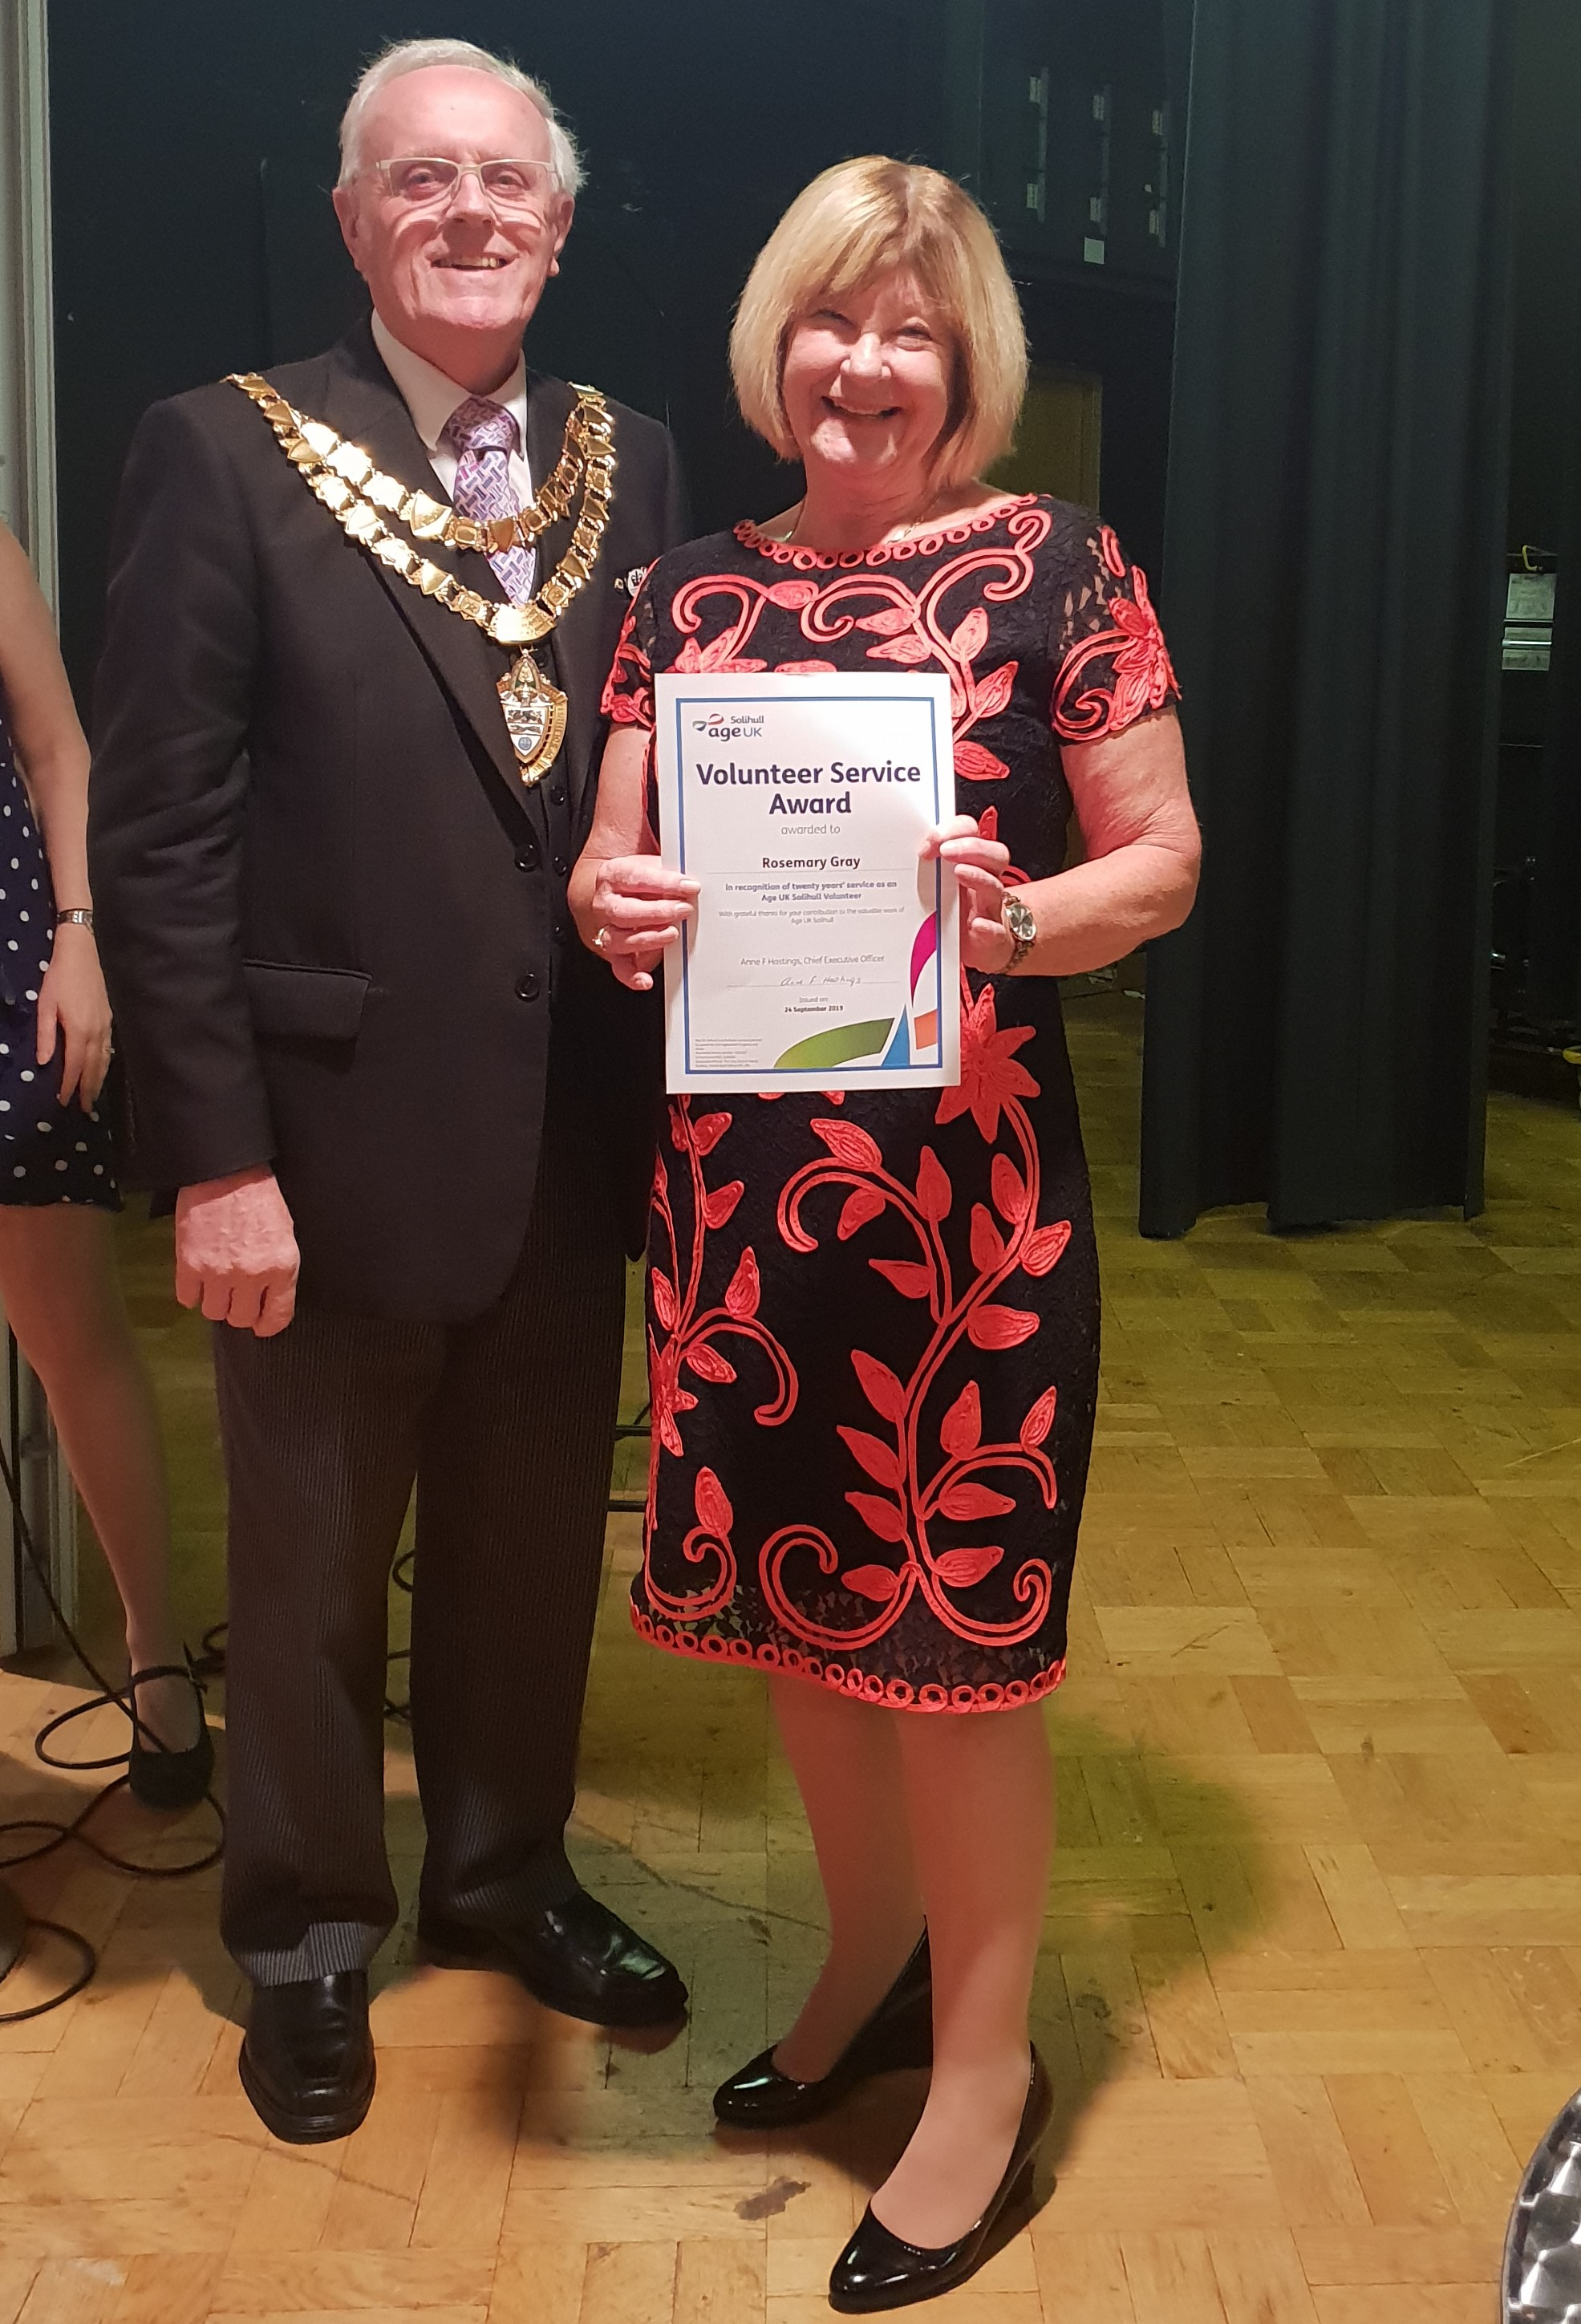 Mayor of Solihull stands with Rosemary Gray, who is wearing a black and red dress and holding a certificate for 20 years' service as an Age UK Solihull volunteer.